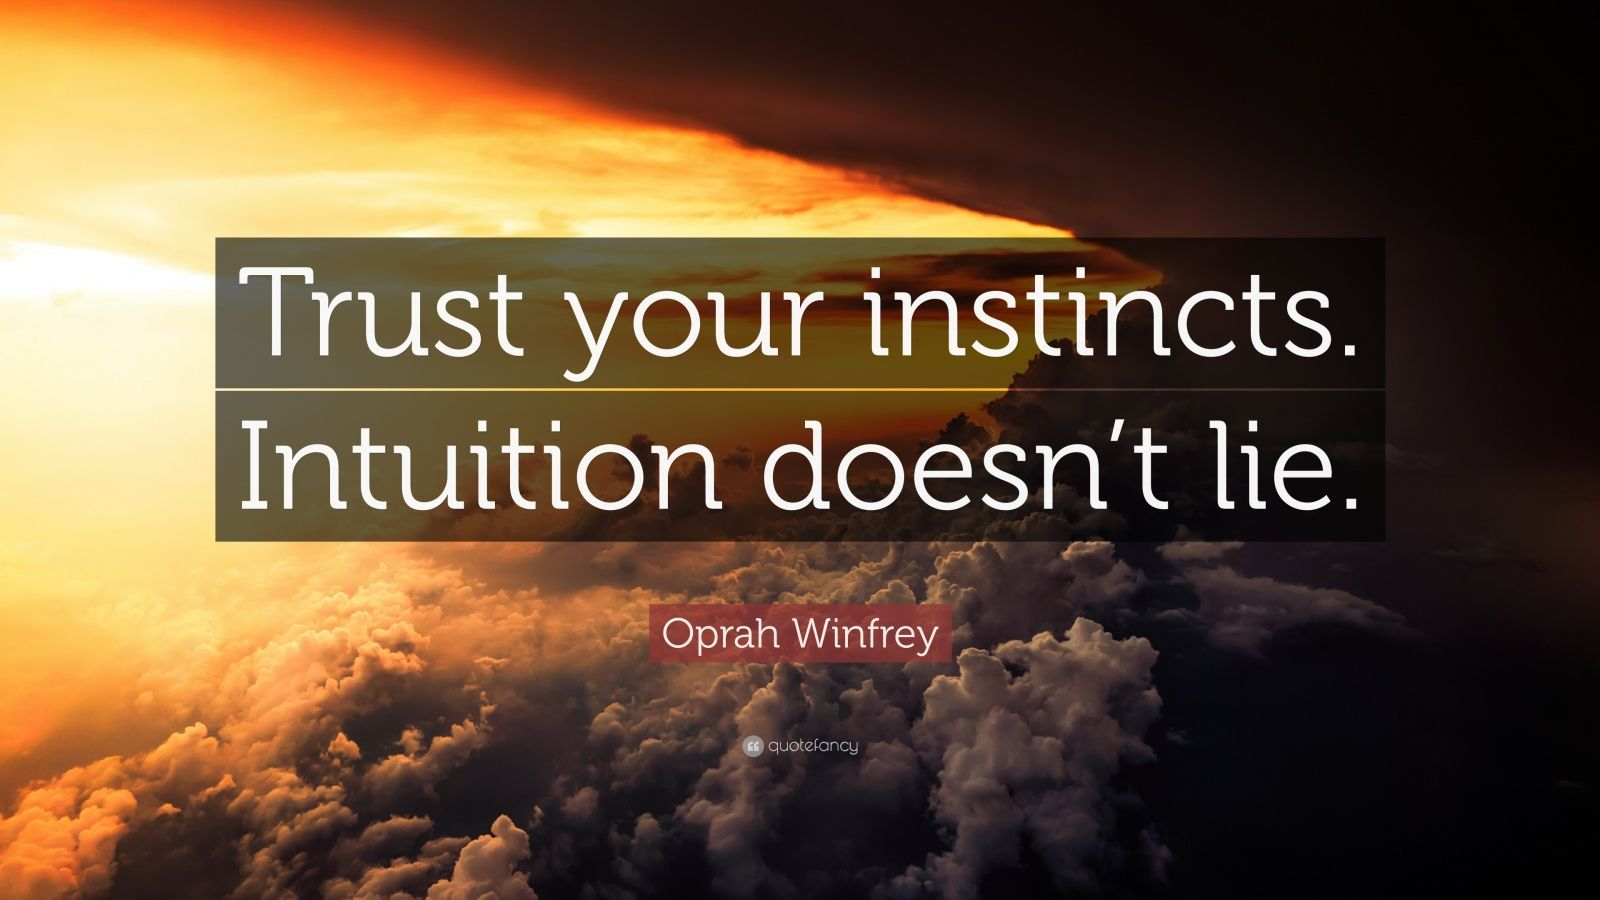 Love Trust Quotes Wallpaper Oprah Winfrey Quote Trust Your Instincts Intuition